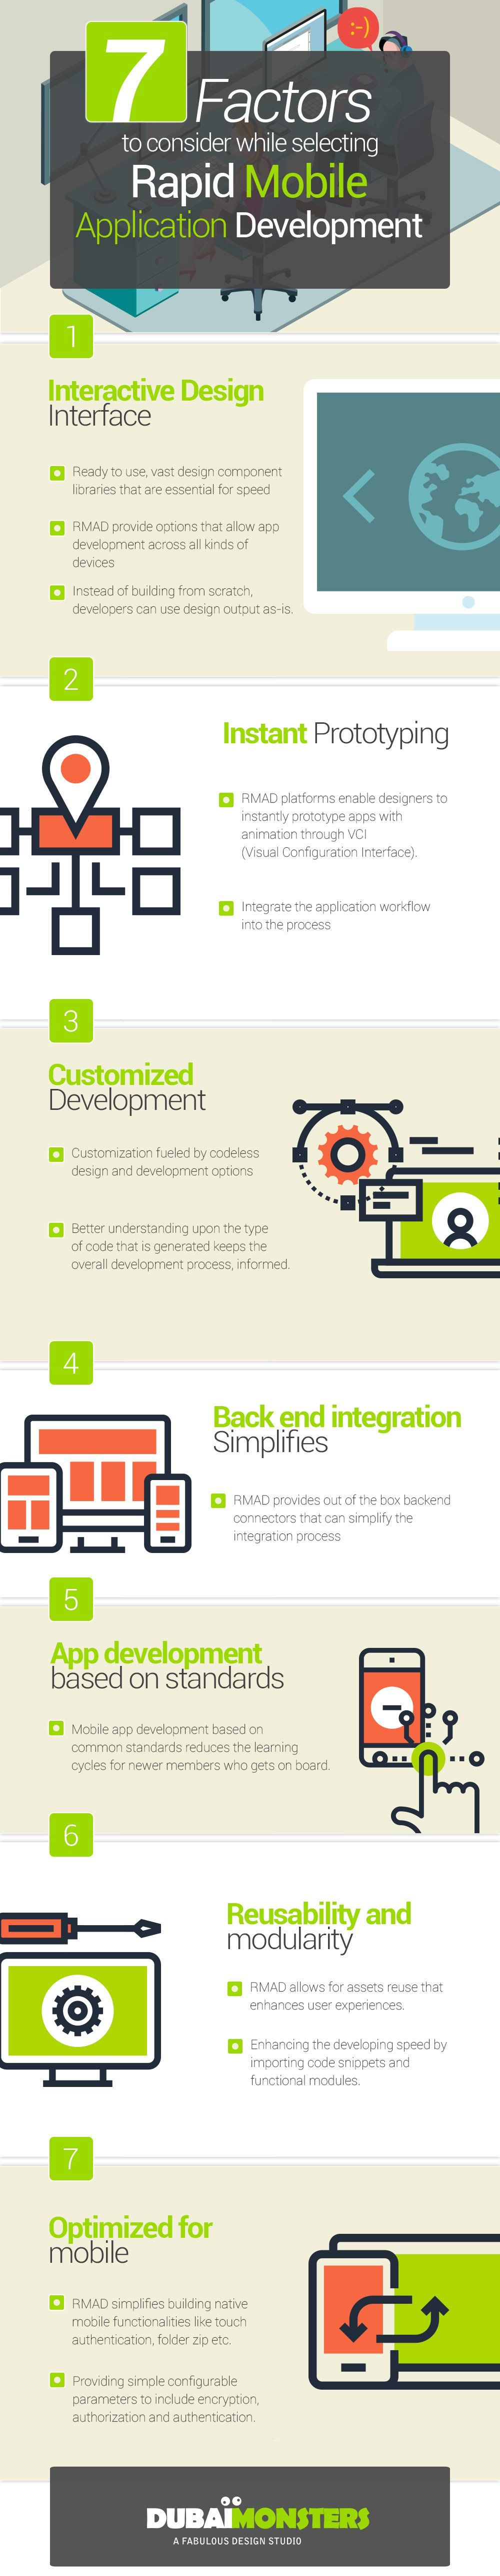 7 Factors to Consider while Selecting Rapid Mobile Application Development